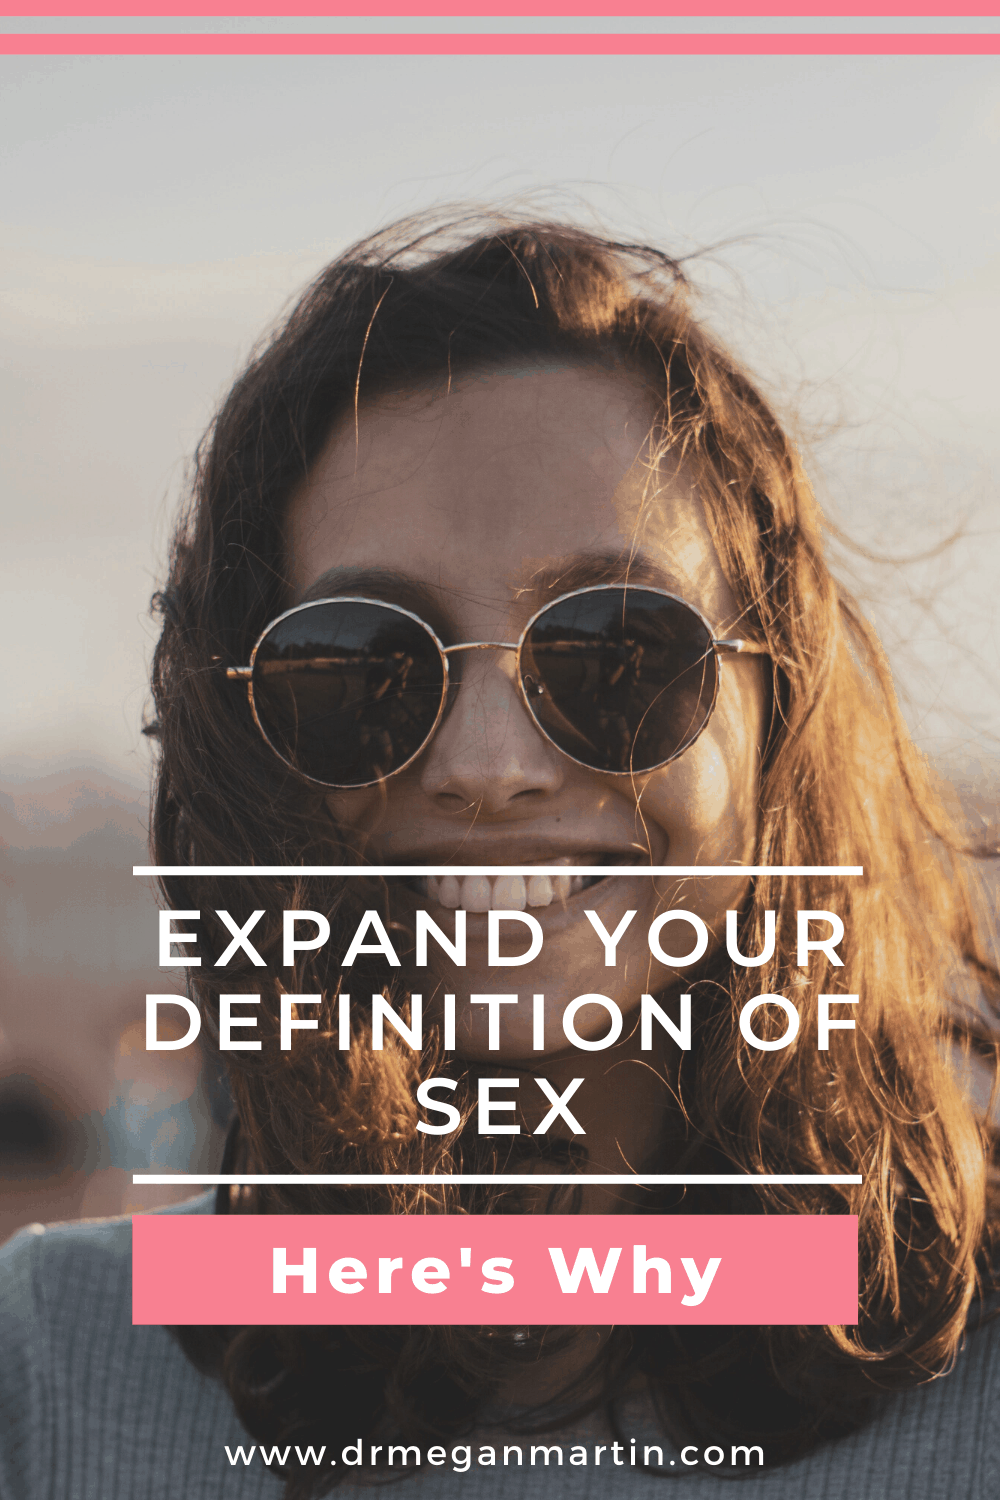 expand your definition of sex, here's why